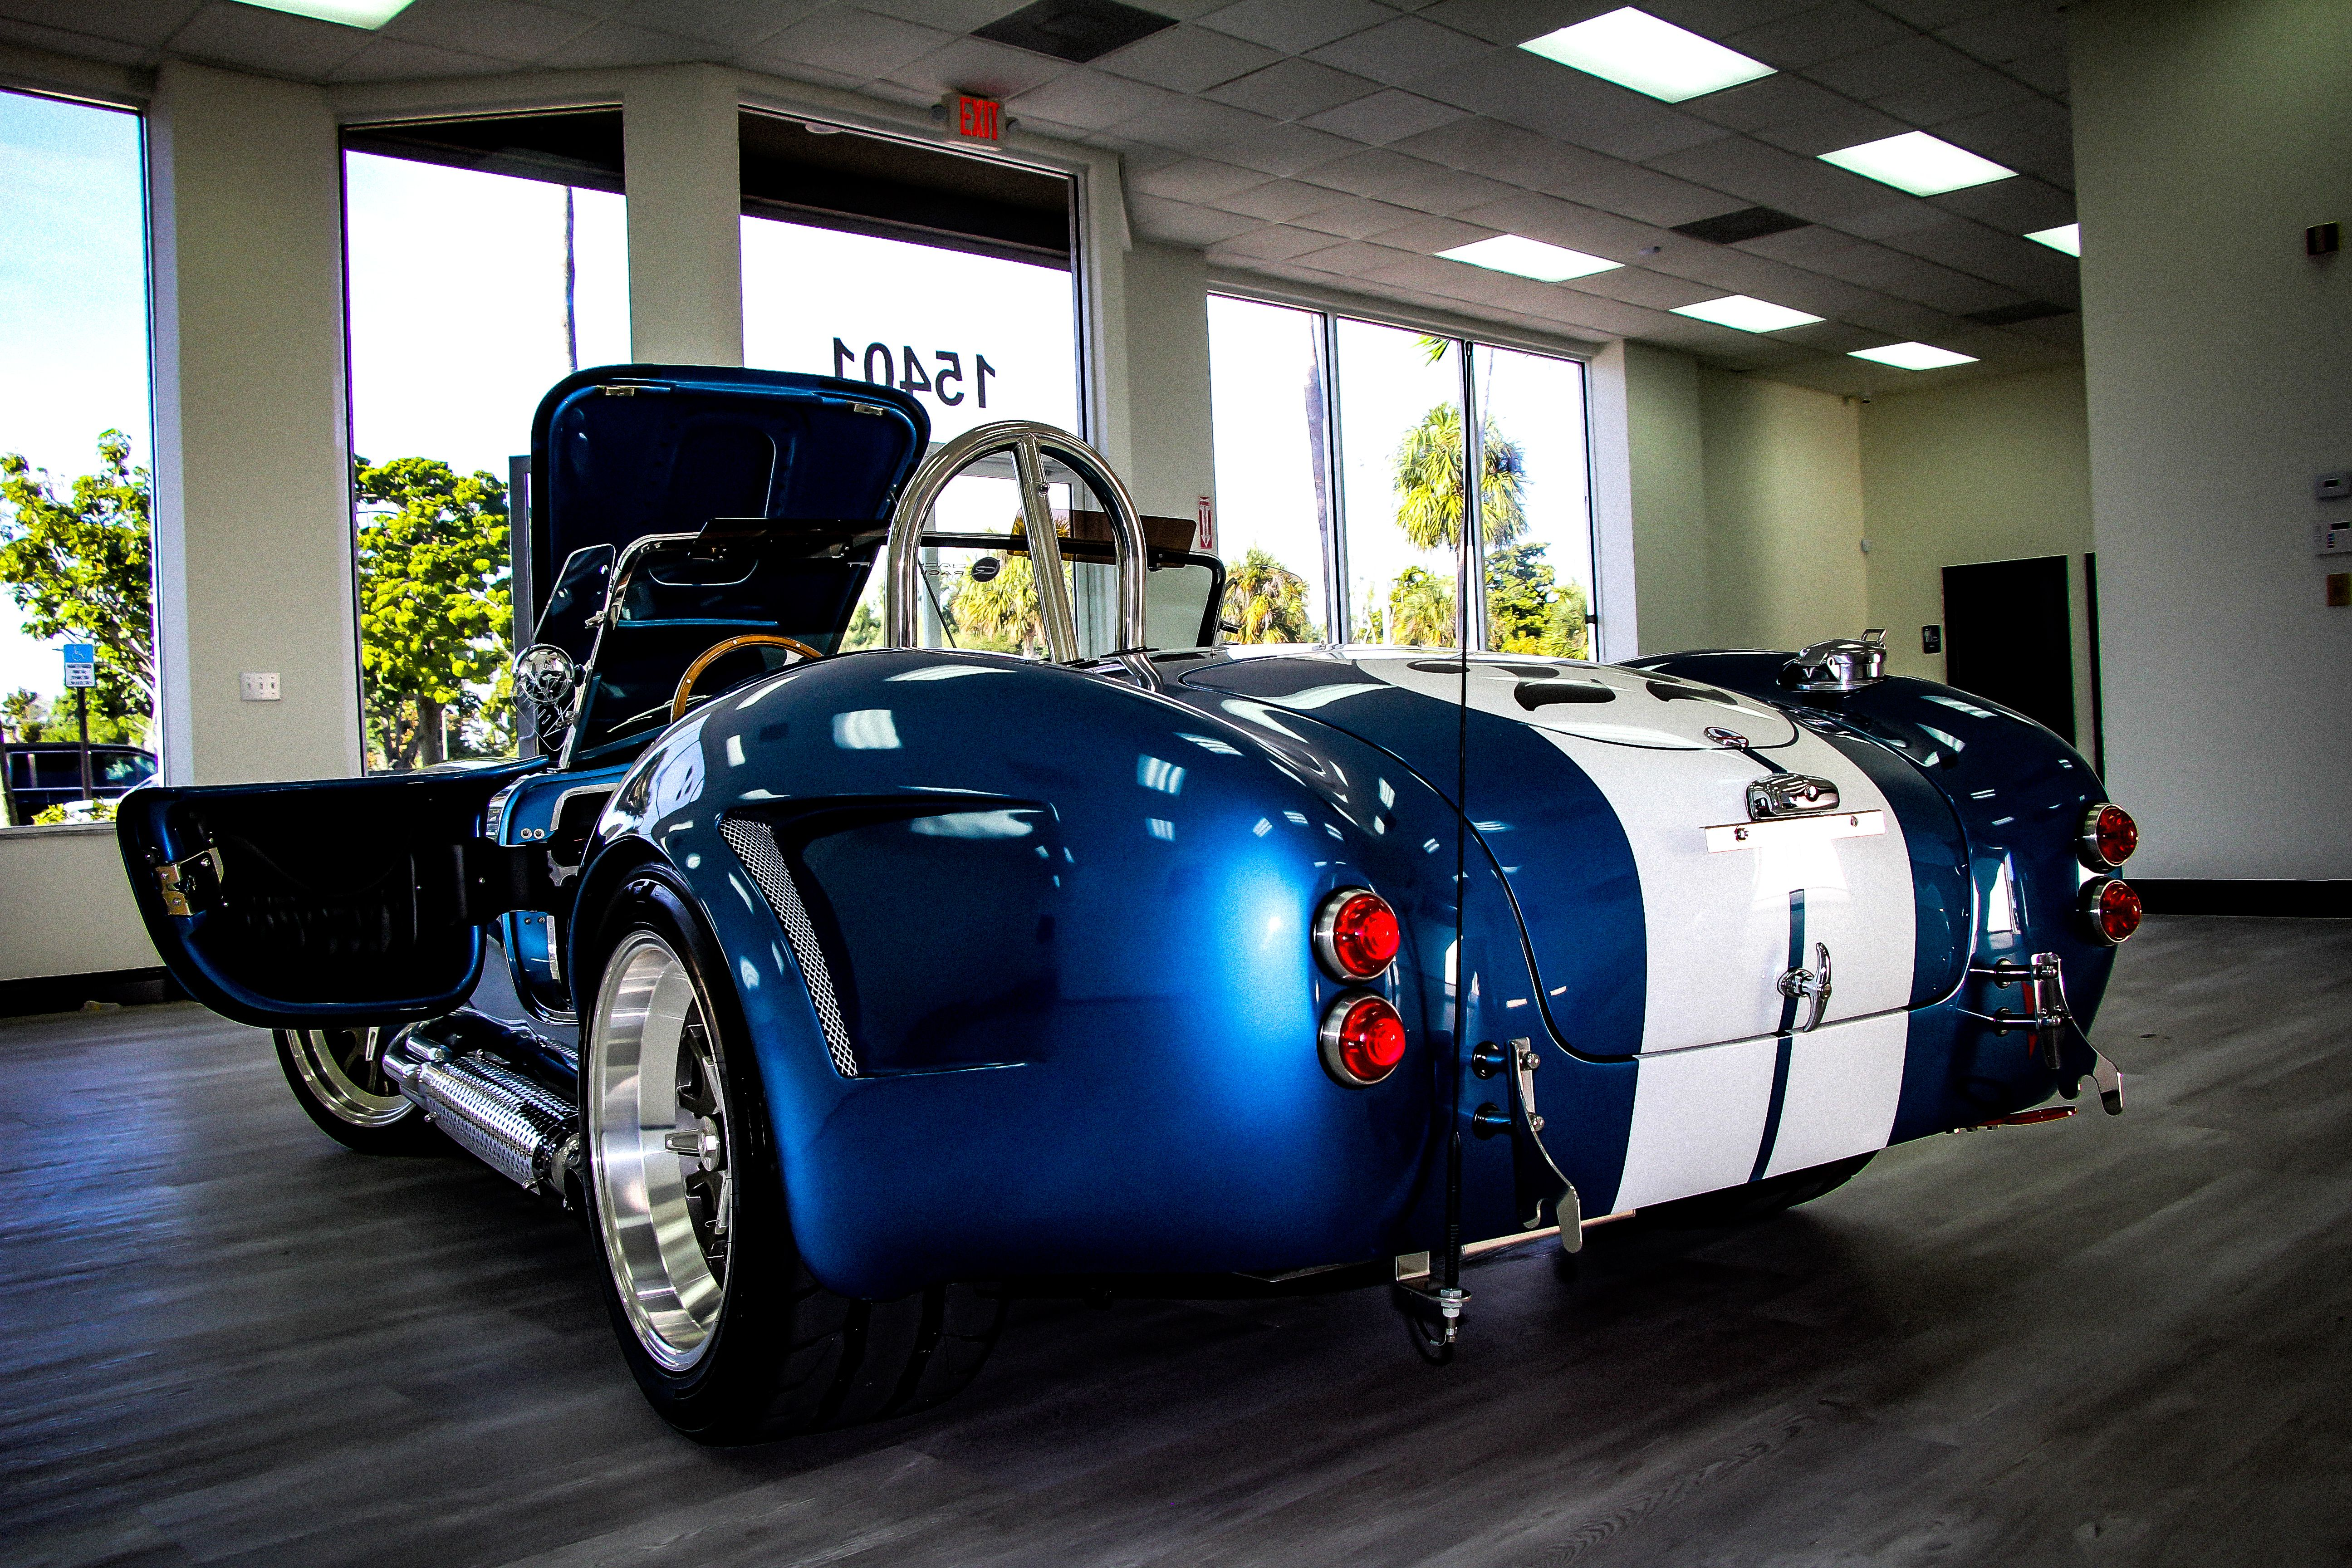 Most of the used car dealers in Miami such as Auto Café Of